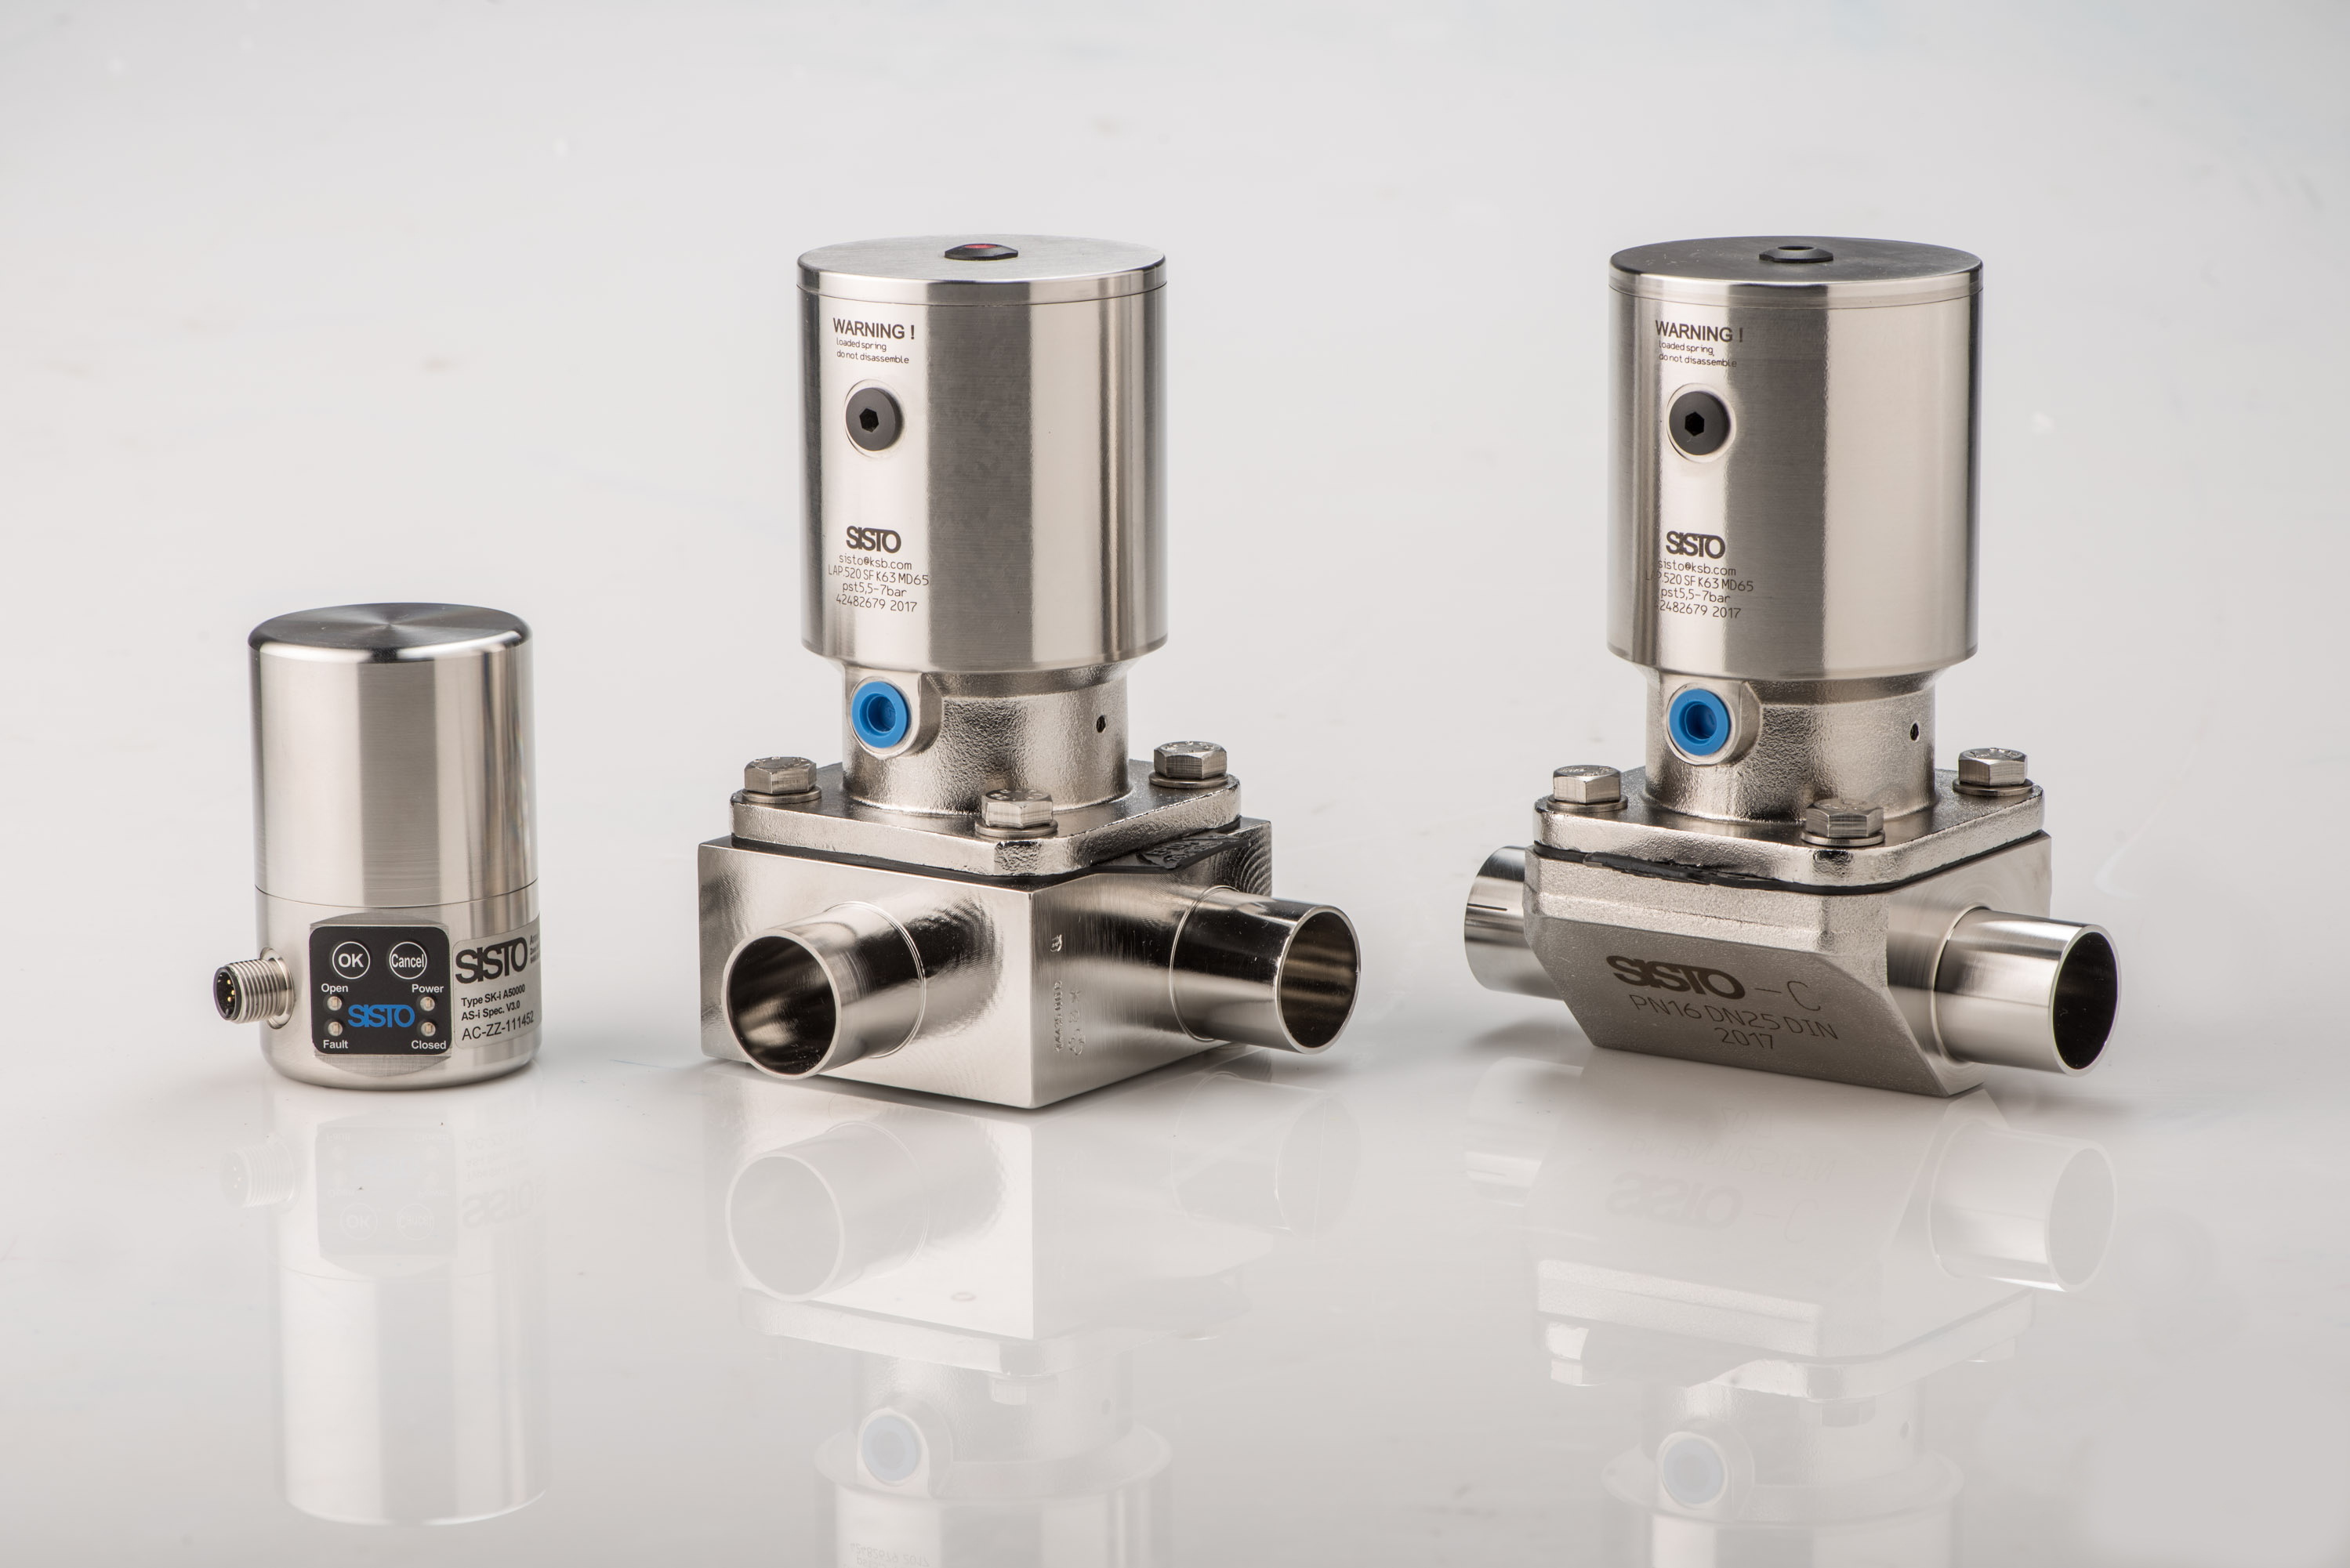 New pneumatic actuator for diaphragm valves used in sterile press photo new pneumatic actuator for diaphragm valves used in sterile applicationsimage 740 kb ccuart Choice Image